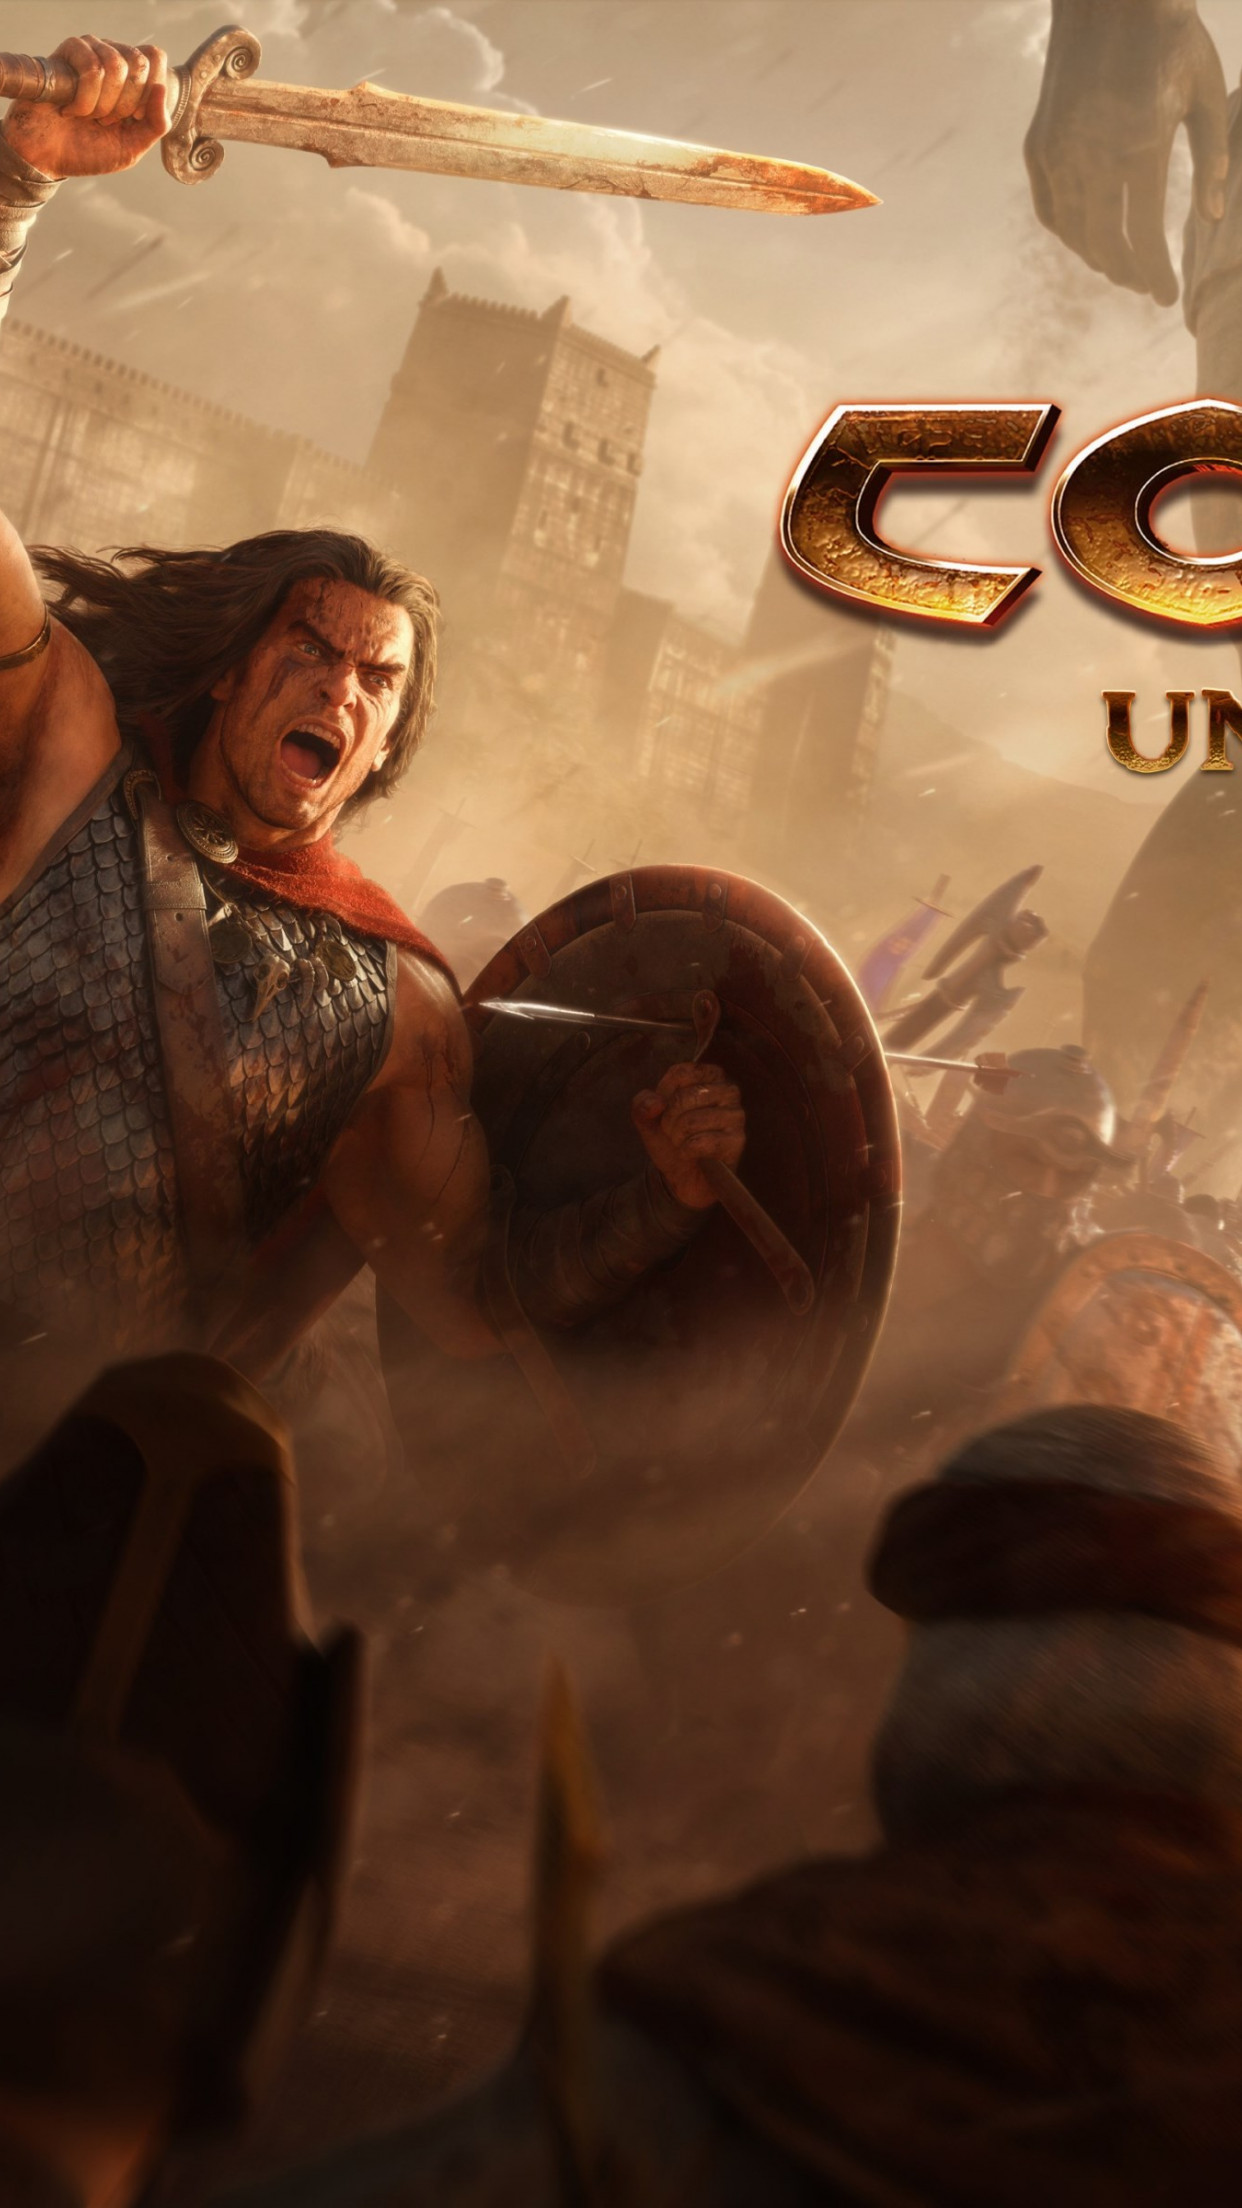 Conan Unconquered wallpaper 1242x2208